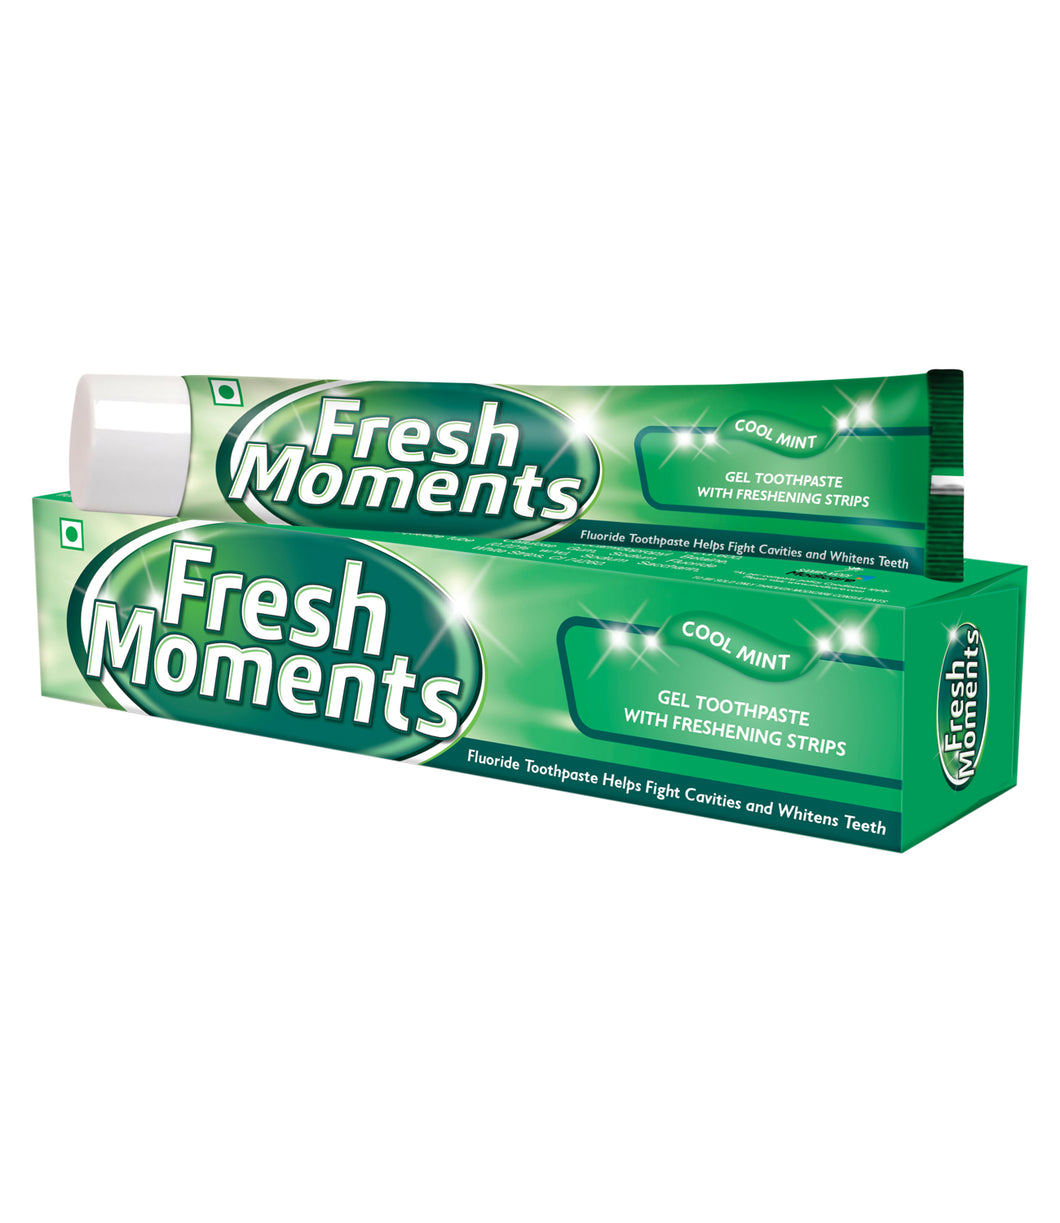 FRESH MOMENTS GEL TOOTHPASTE (100G)- Pack of 3